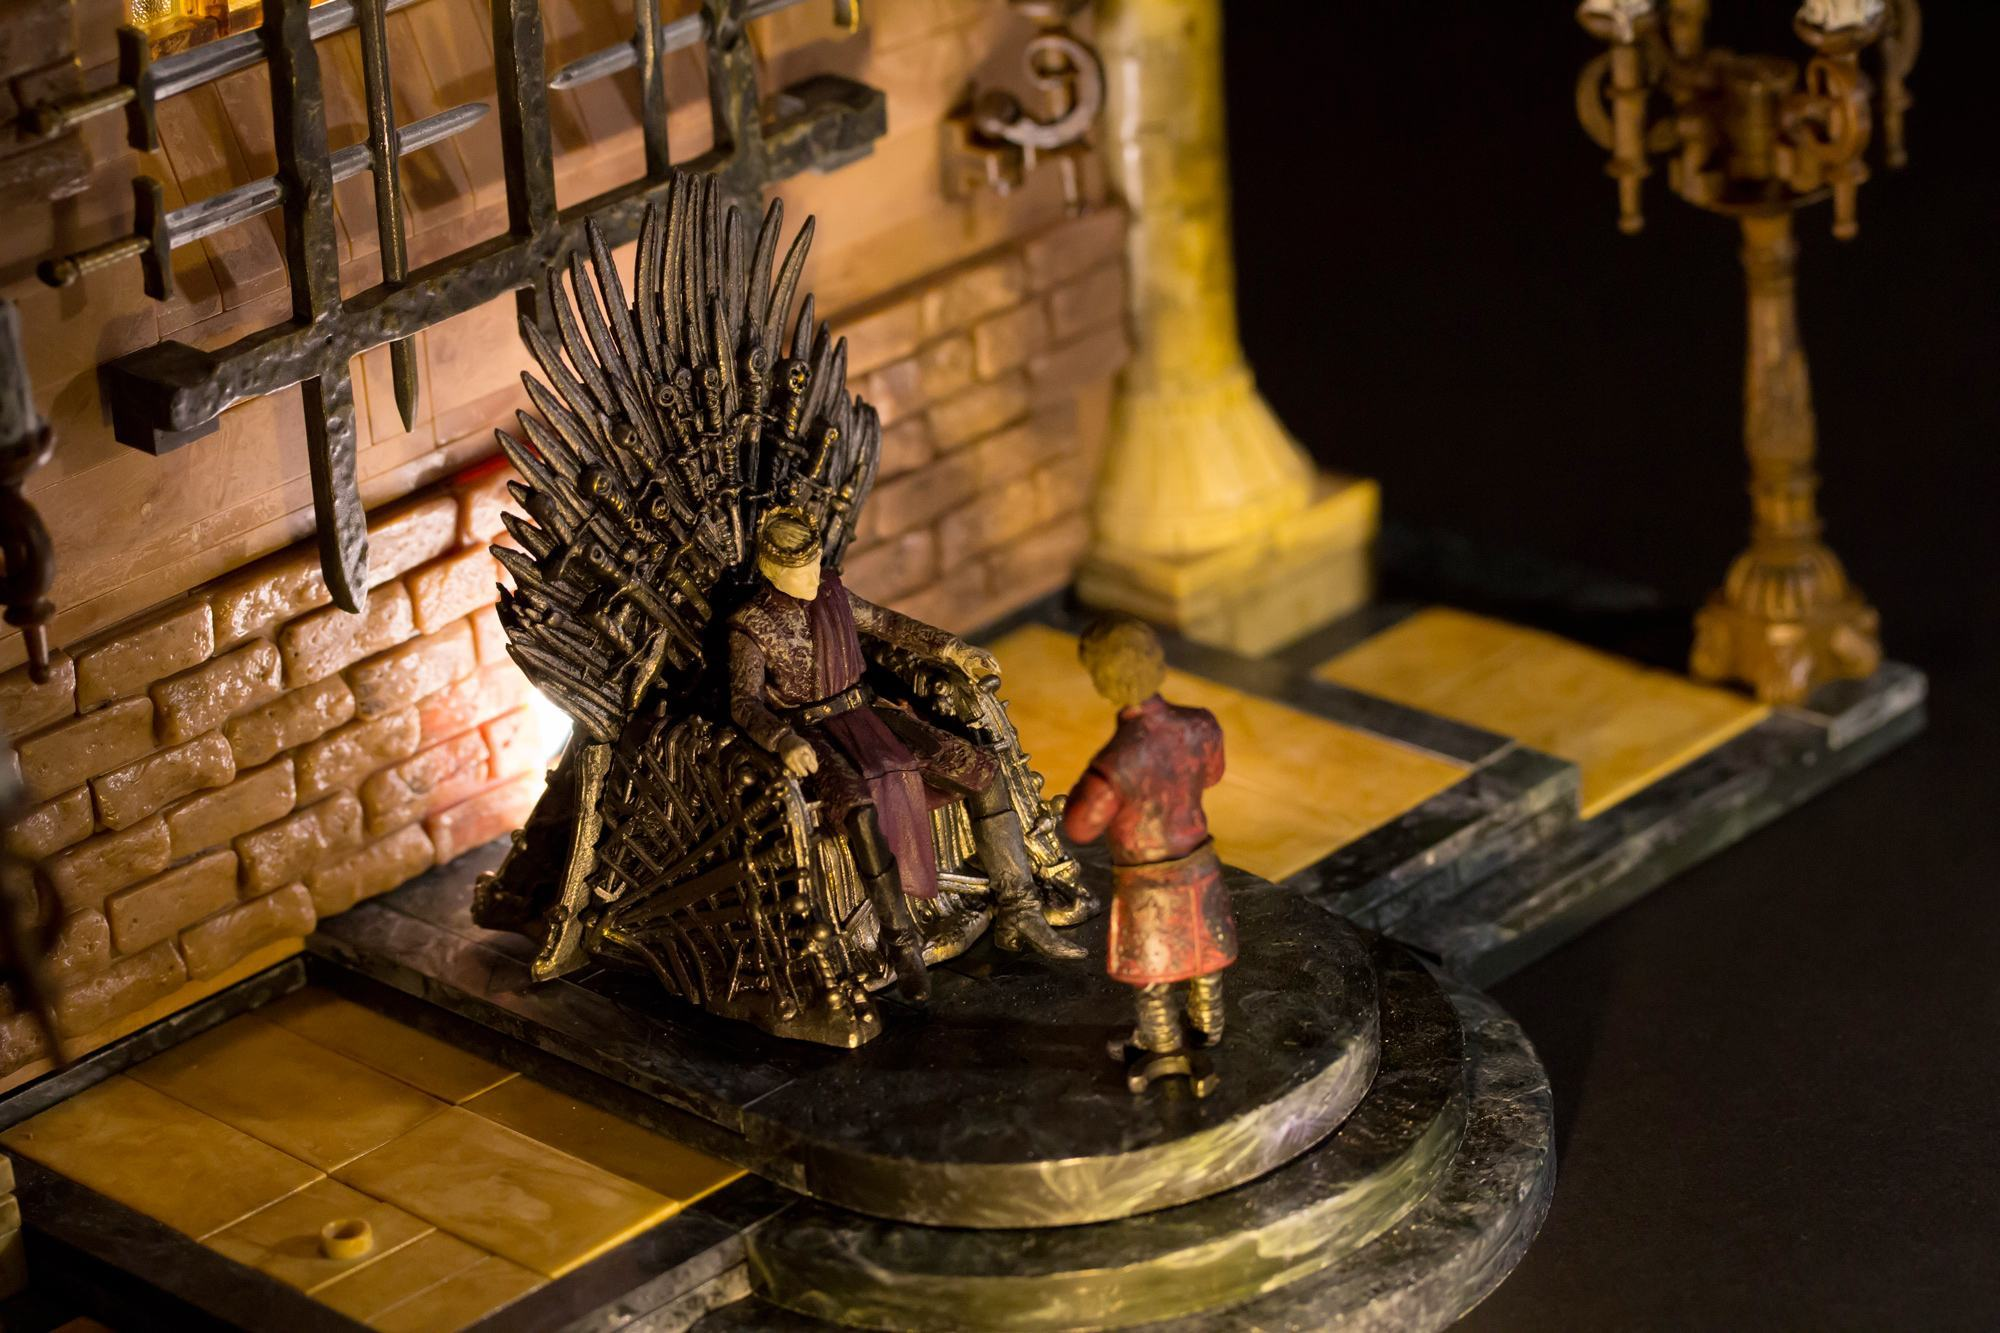 Game-of-Thrones-Construction-Set-Iron-Throne-Room-08